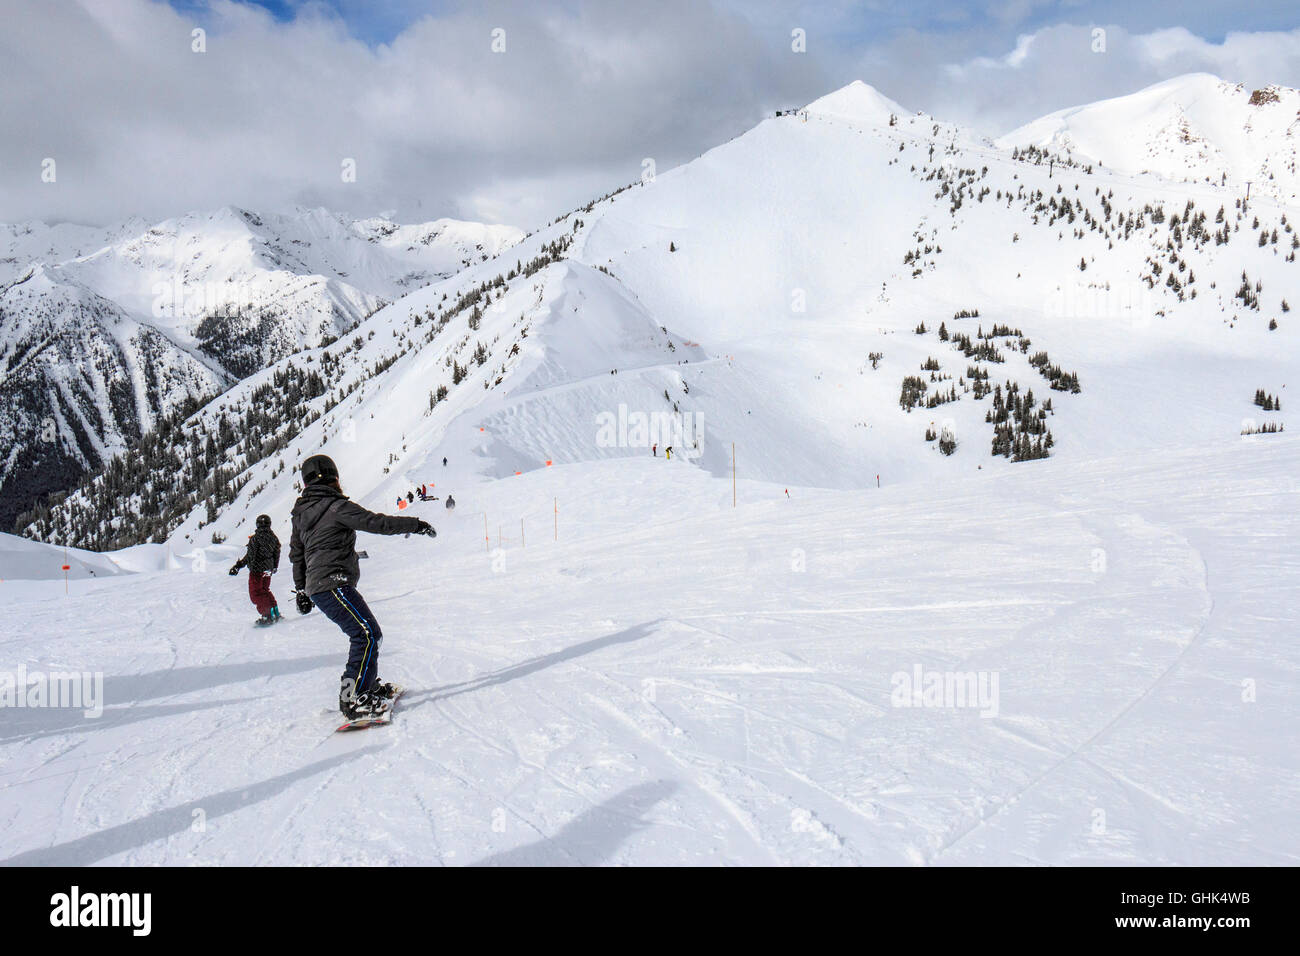 Kicking Horse ski resort near Golden, BC, Canada. - Stock Image